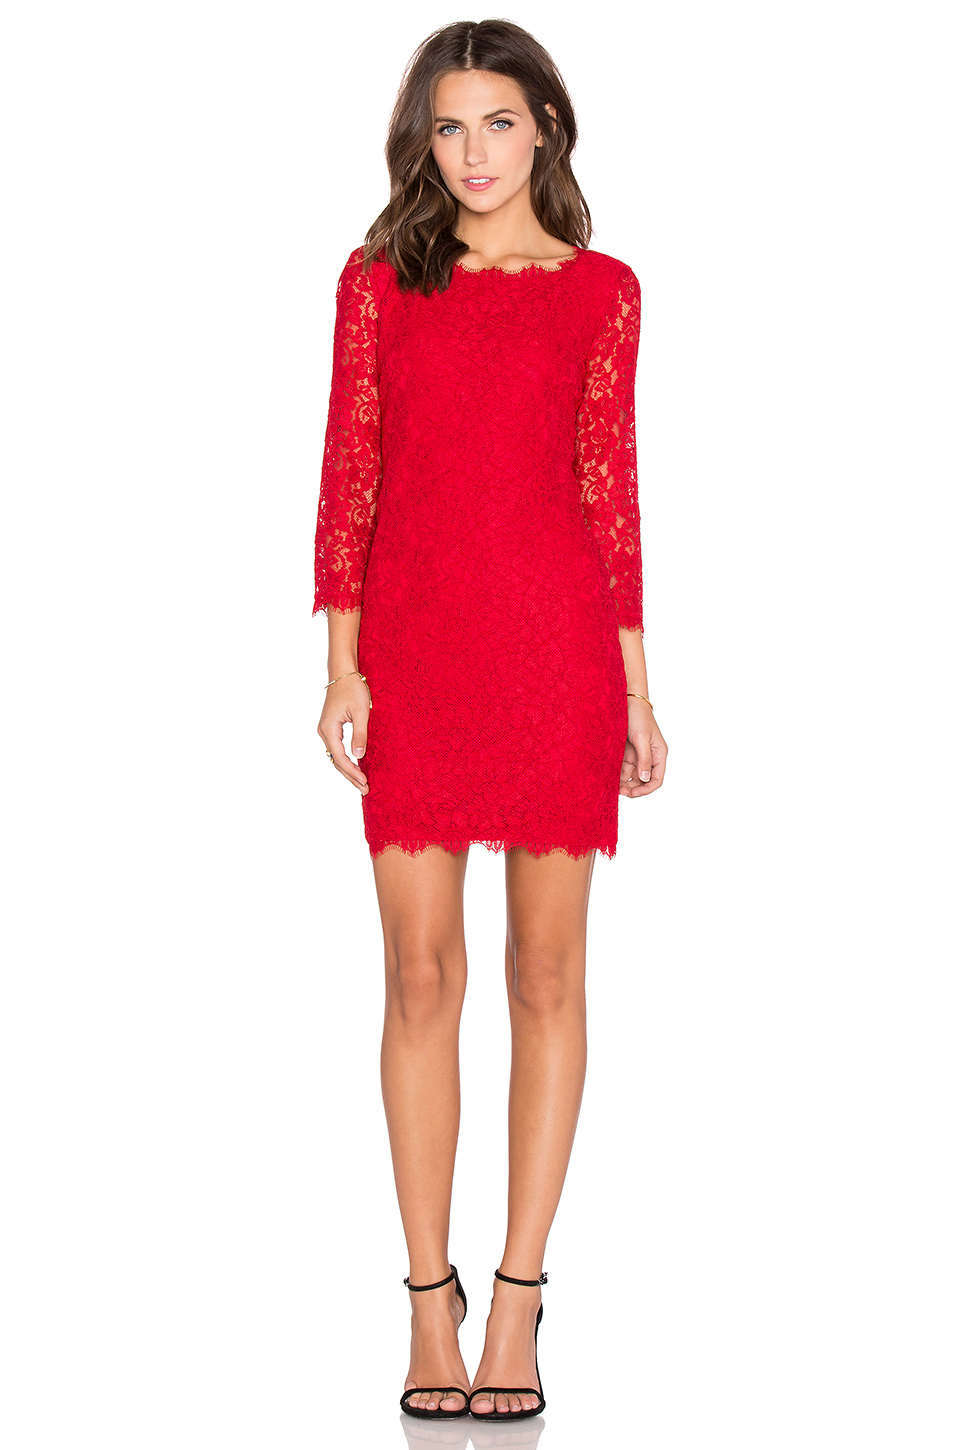 Diane von furstenberg Zarita Lace Mini Dress in Red | Lyst